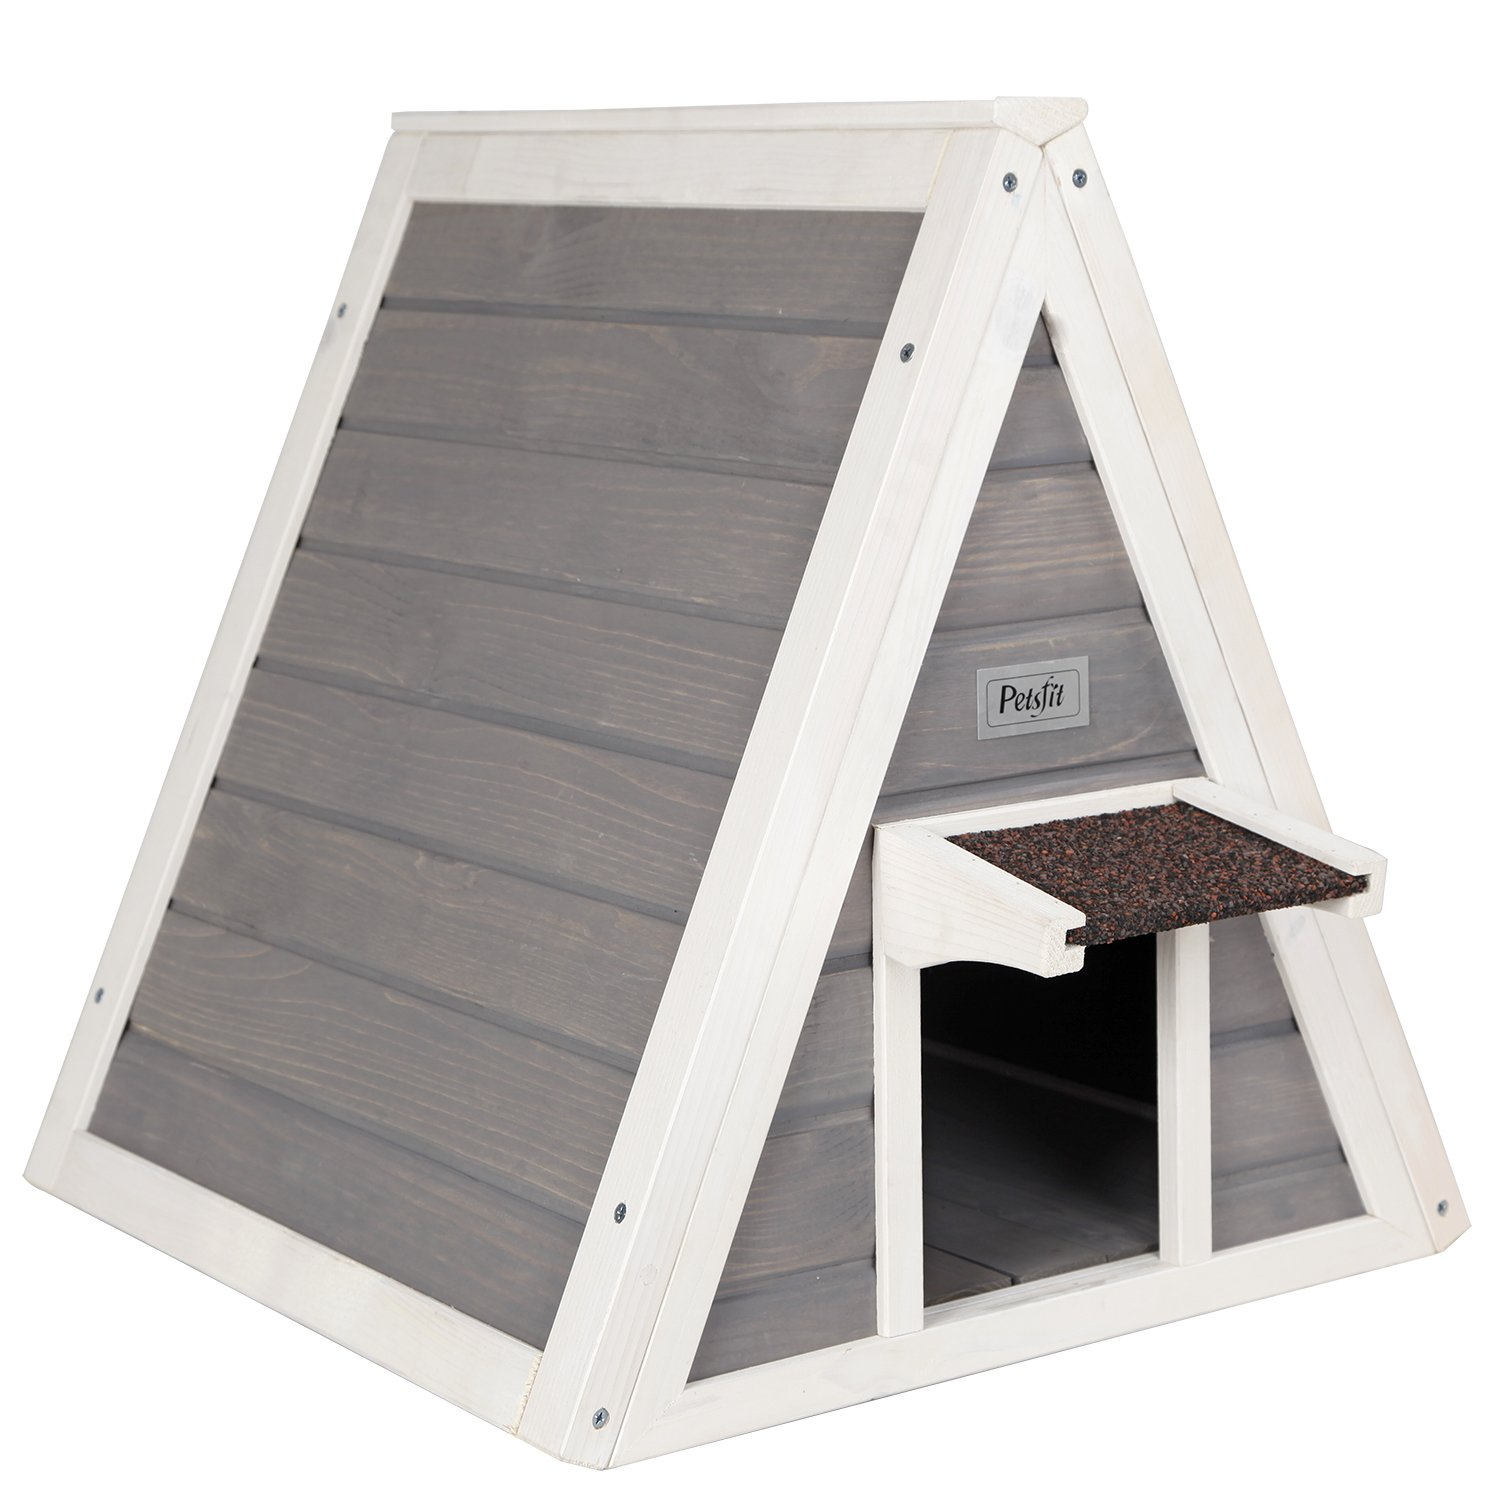 Light Grey Petsfit Outdoor Cat House for 1-2 Cats,1-Year Warranty